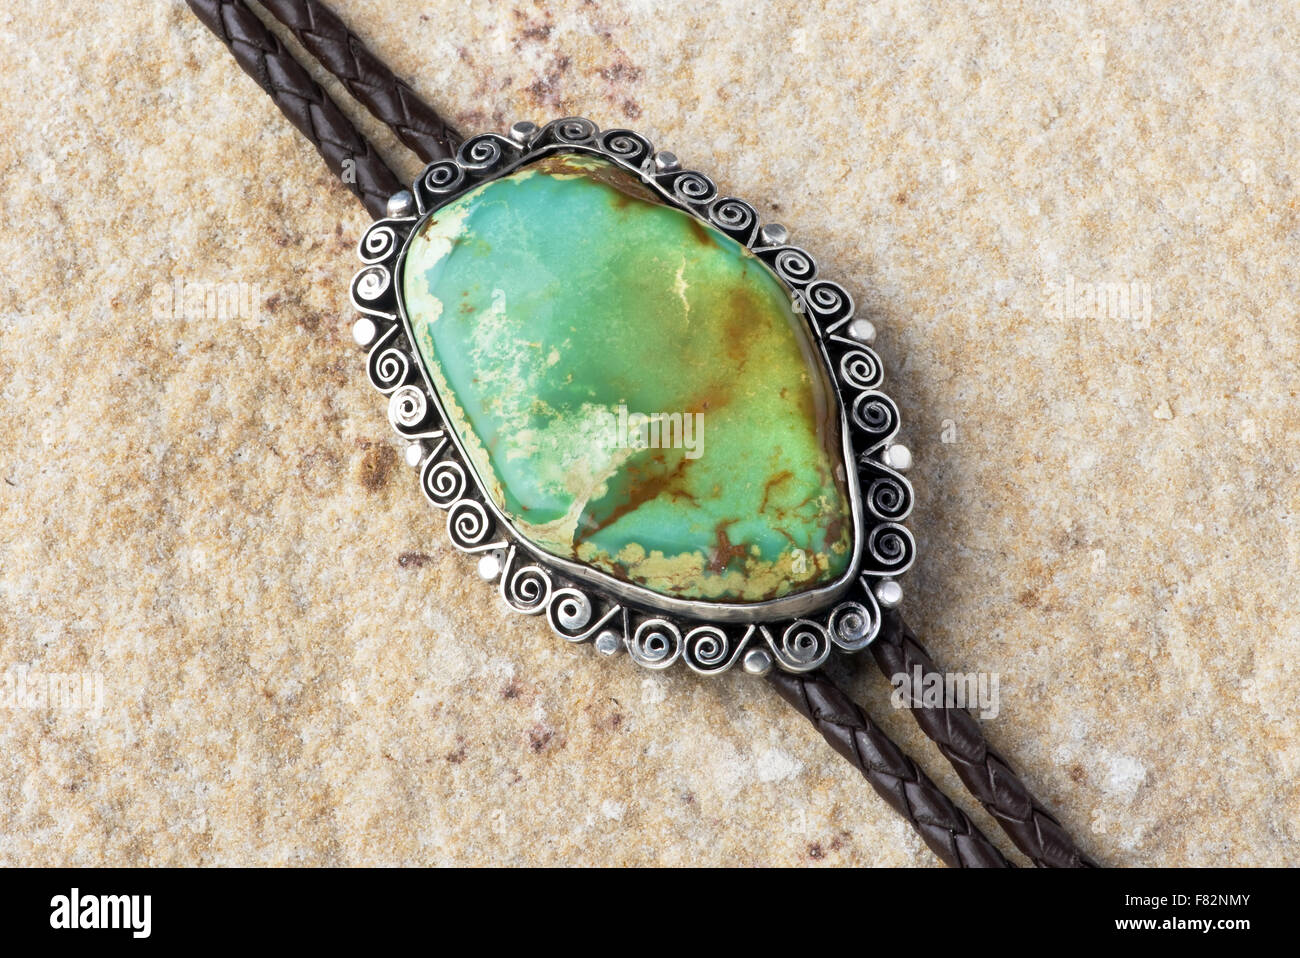 Southwestern green turquoise silver bolo tie. - Stock Image